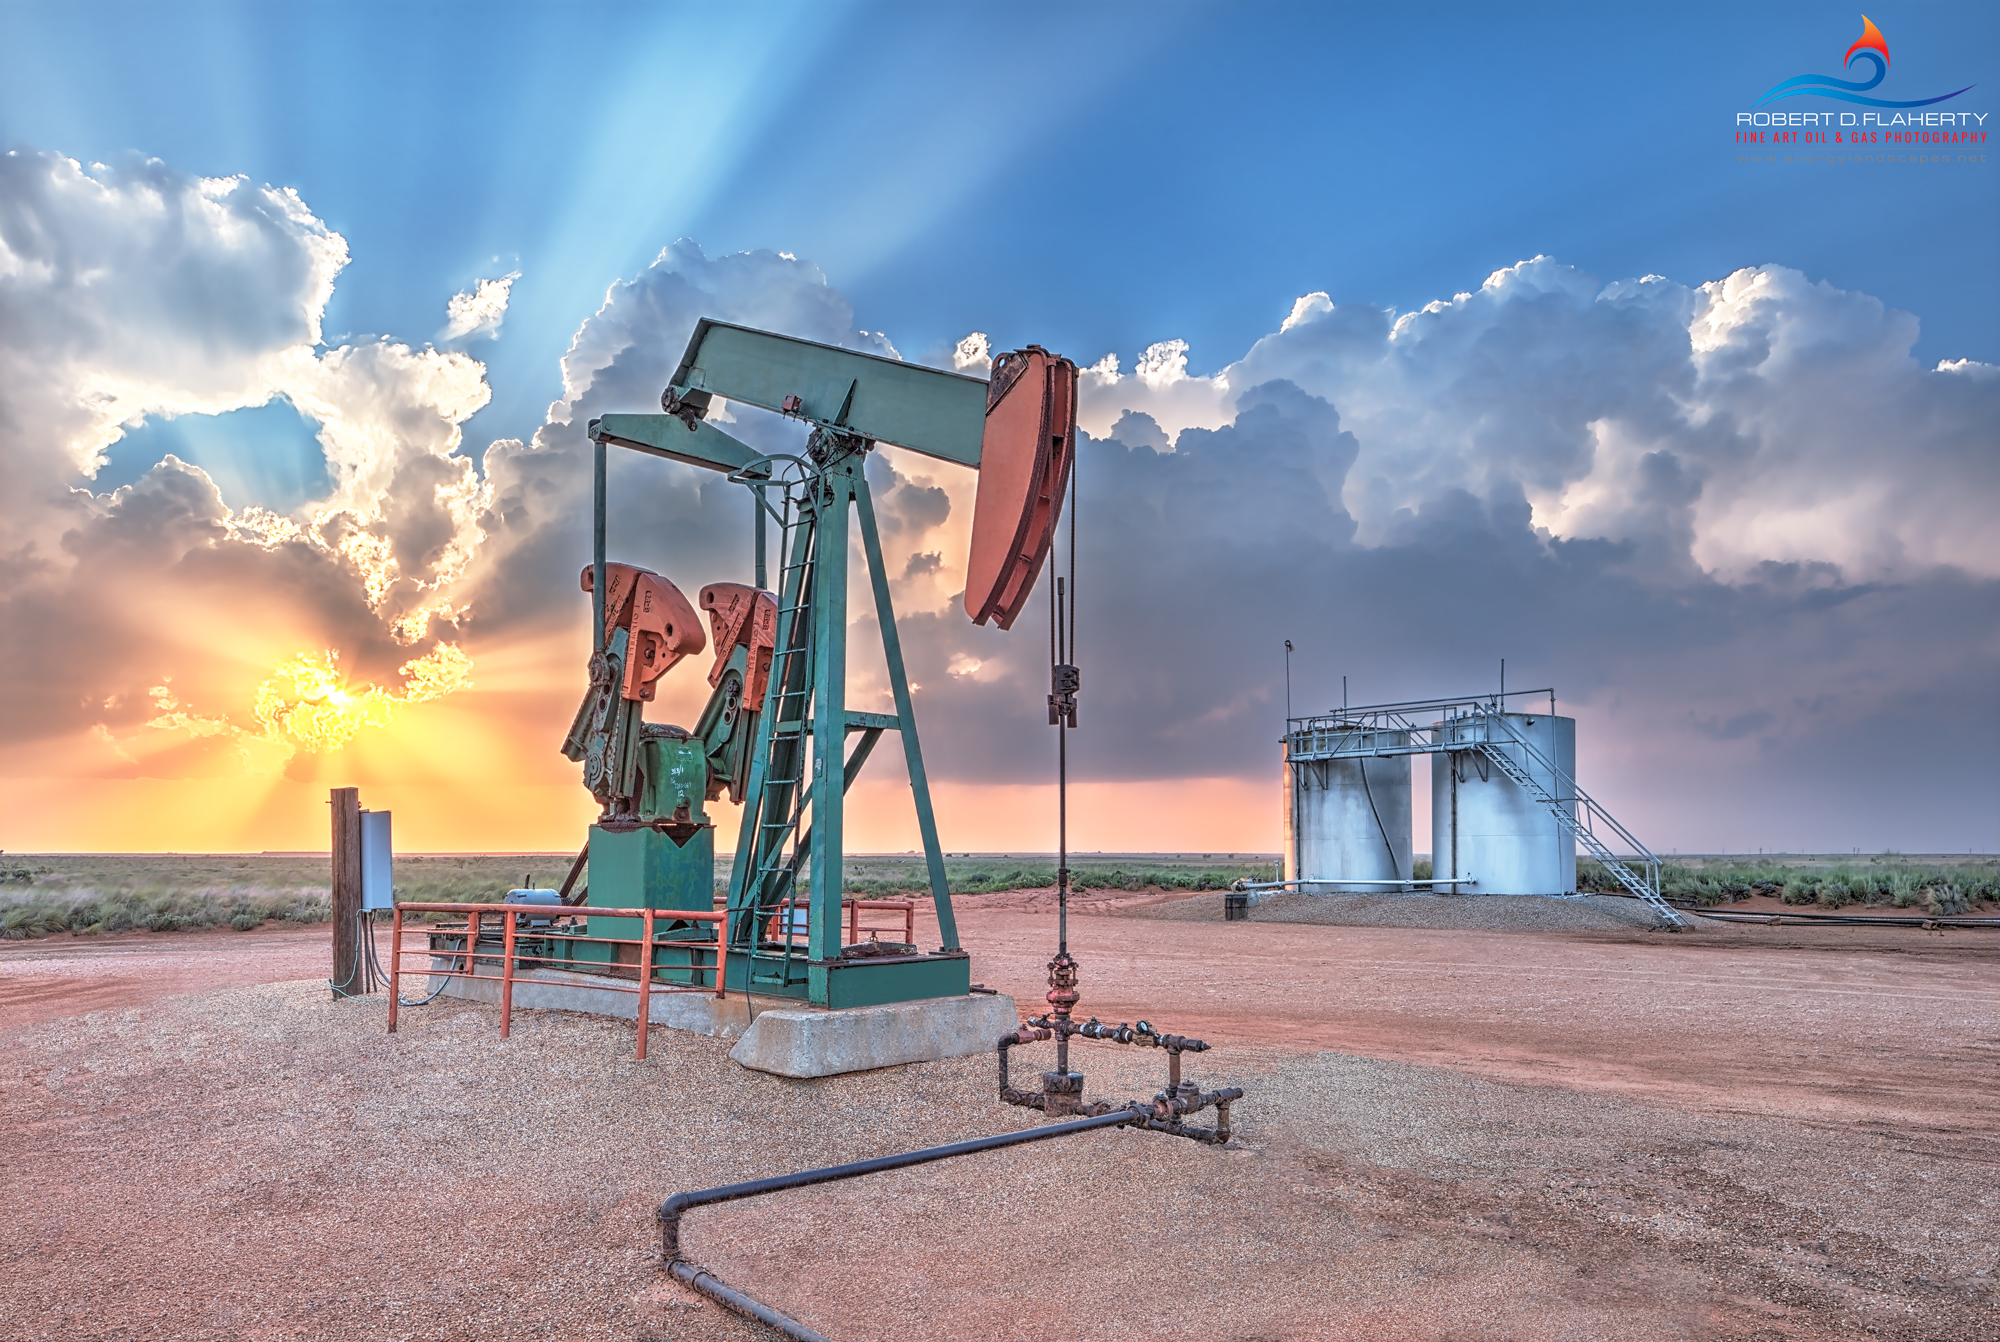 The Best Of Whats Around features a pump jack and battery on an old stripper well on the open plains Northwest of Denver City...